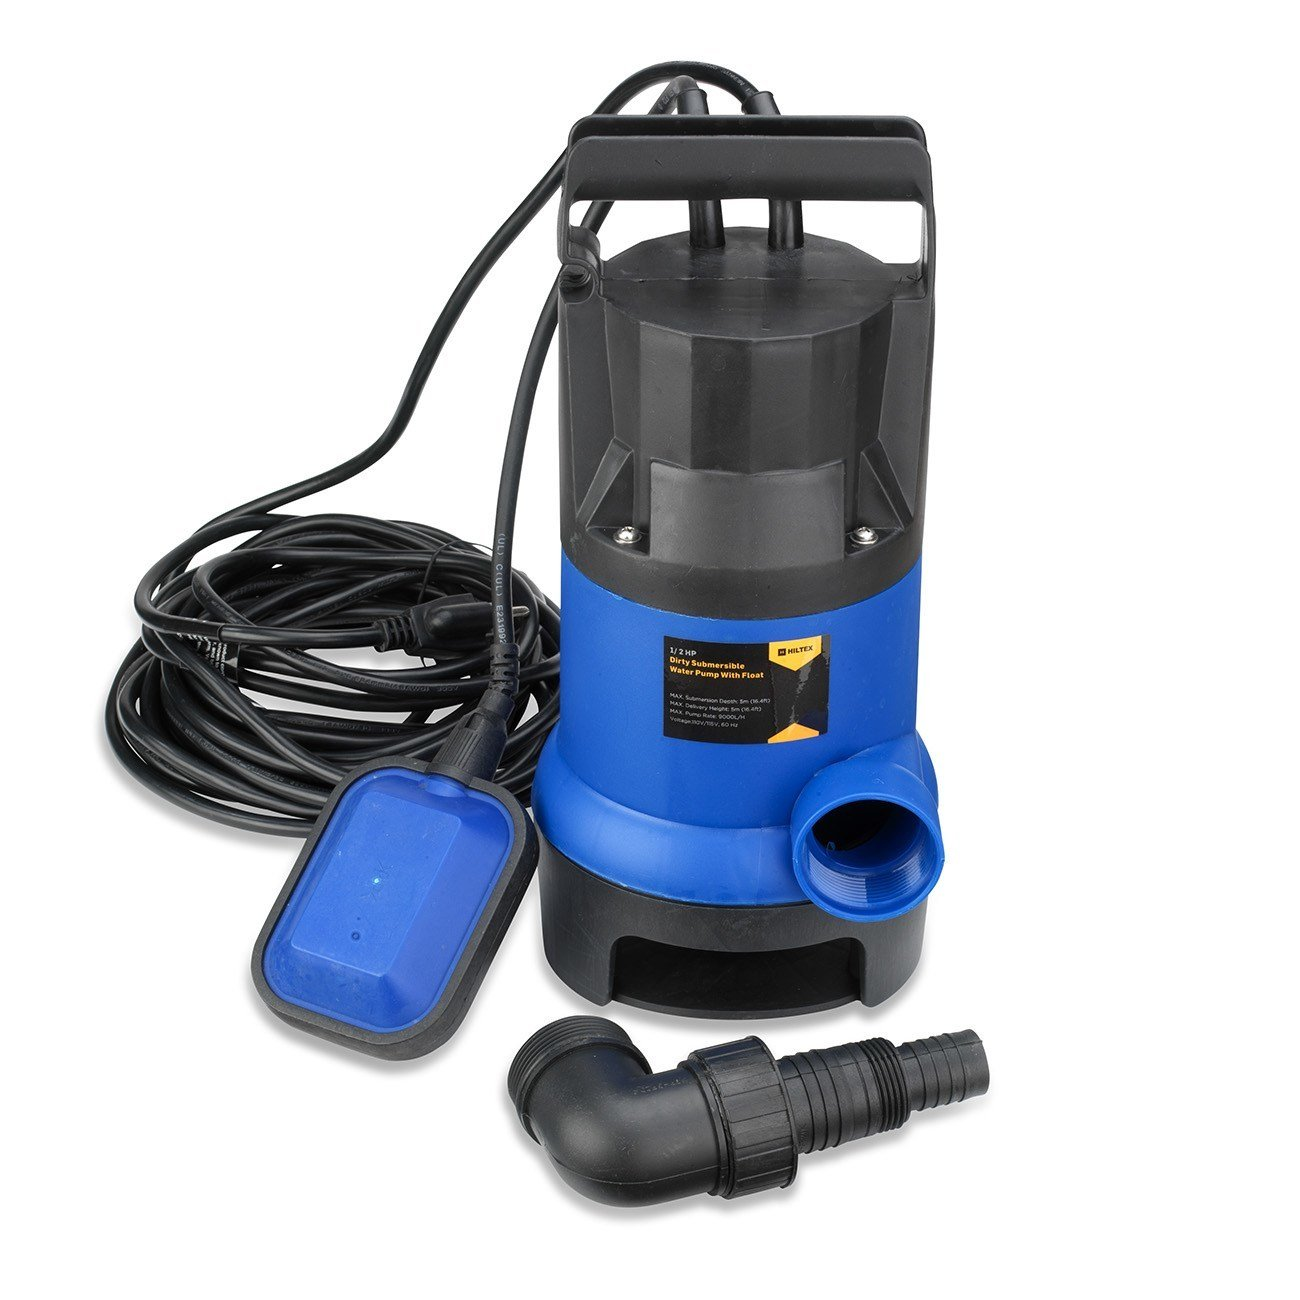 Neiko 50637 Submersible Water Pump with Float Switch for Aquariums, Fountains, Hydroponics and Ponds 1/2 HP Ridgerock Tools Inc